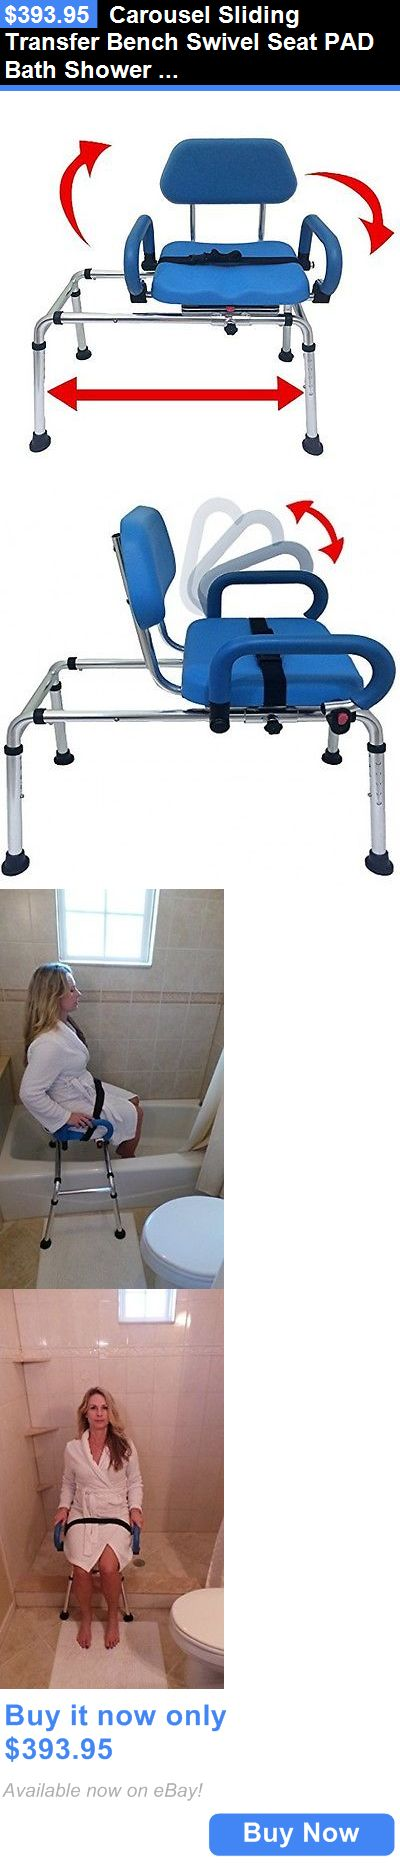 Transfer Boards and Benches: Carousel Premium Padded Sliding Bath ...